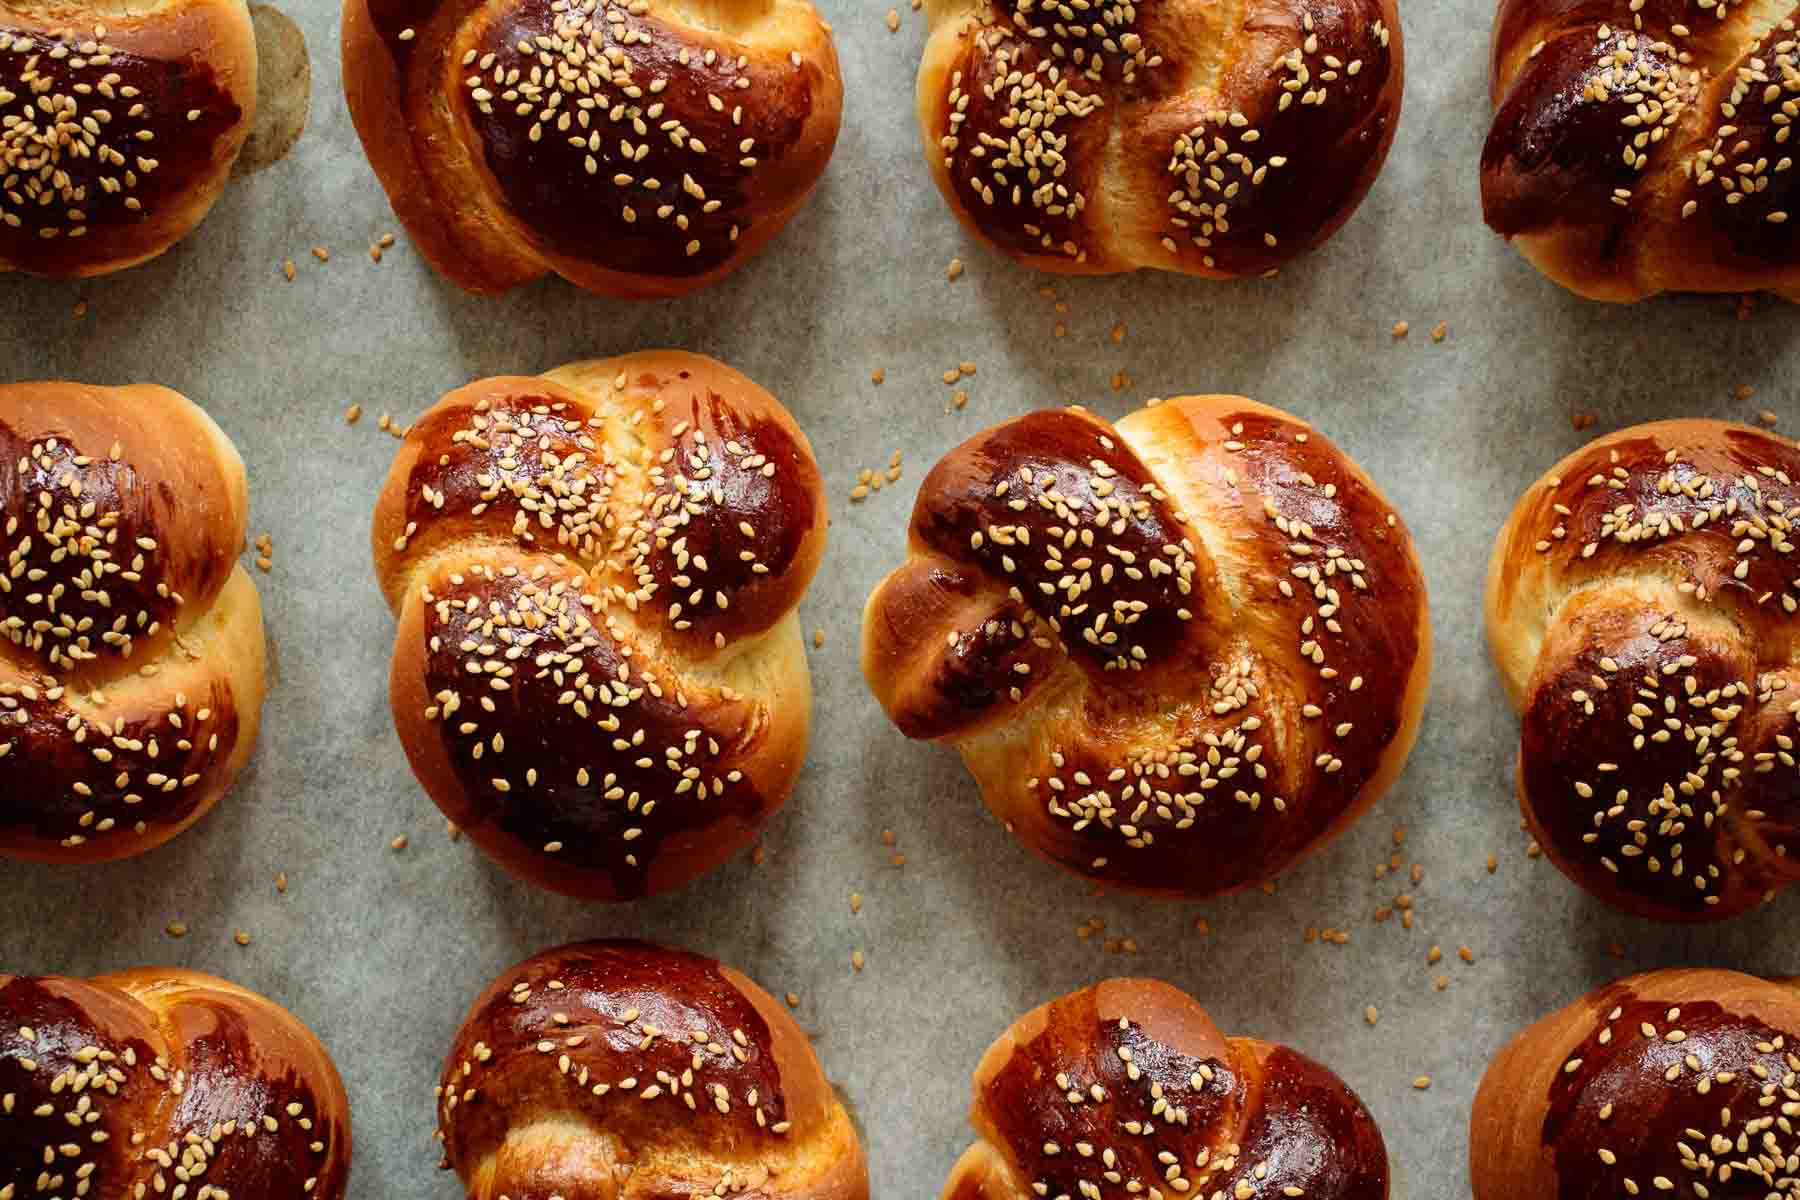 a tray full of baked challah rolls